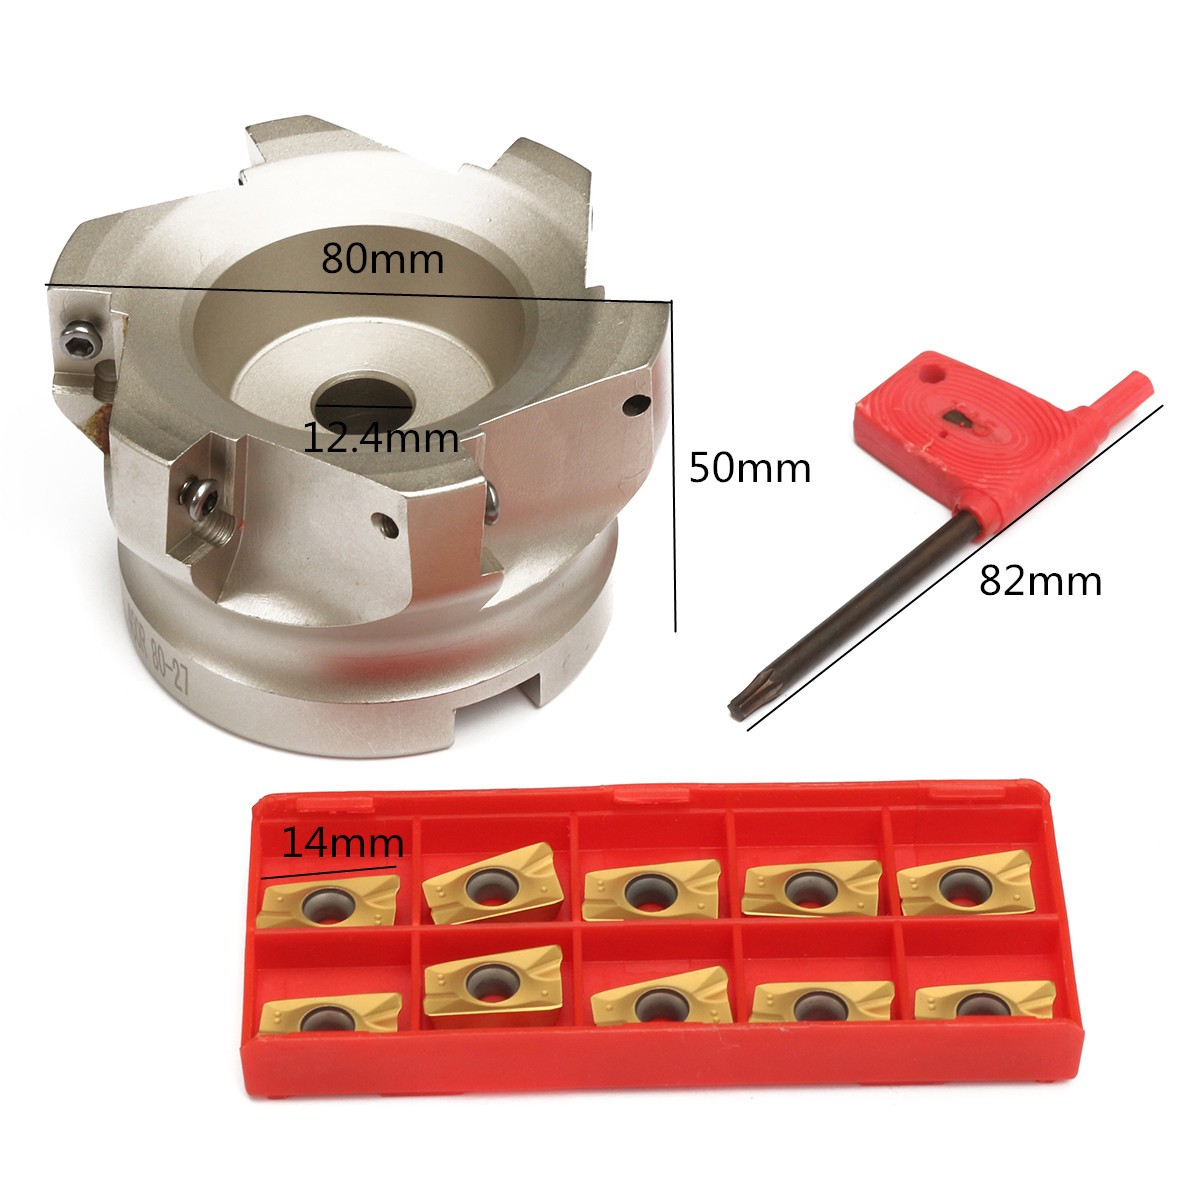 400R-80-27-6F 6Flutes Inner Hole 400R 90 degrees Indexable CNC Face Milling Cutter +APMT1604PDER Inserts Knife + T15 Spanner 1pc bap 400r 80 27 6f 6 flutes face end mill cutter with 10pcs apmt1604pder inserts for milling machine